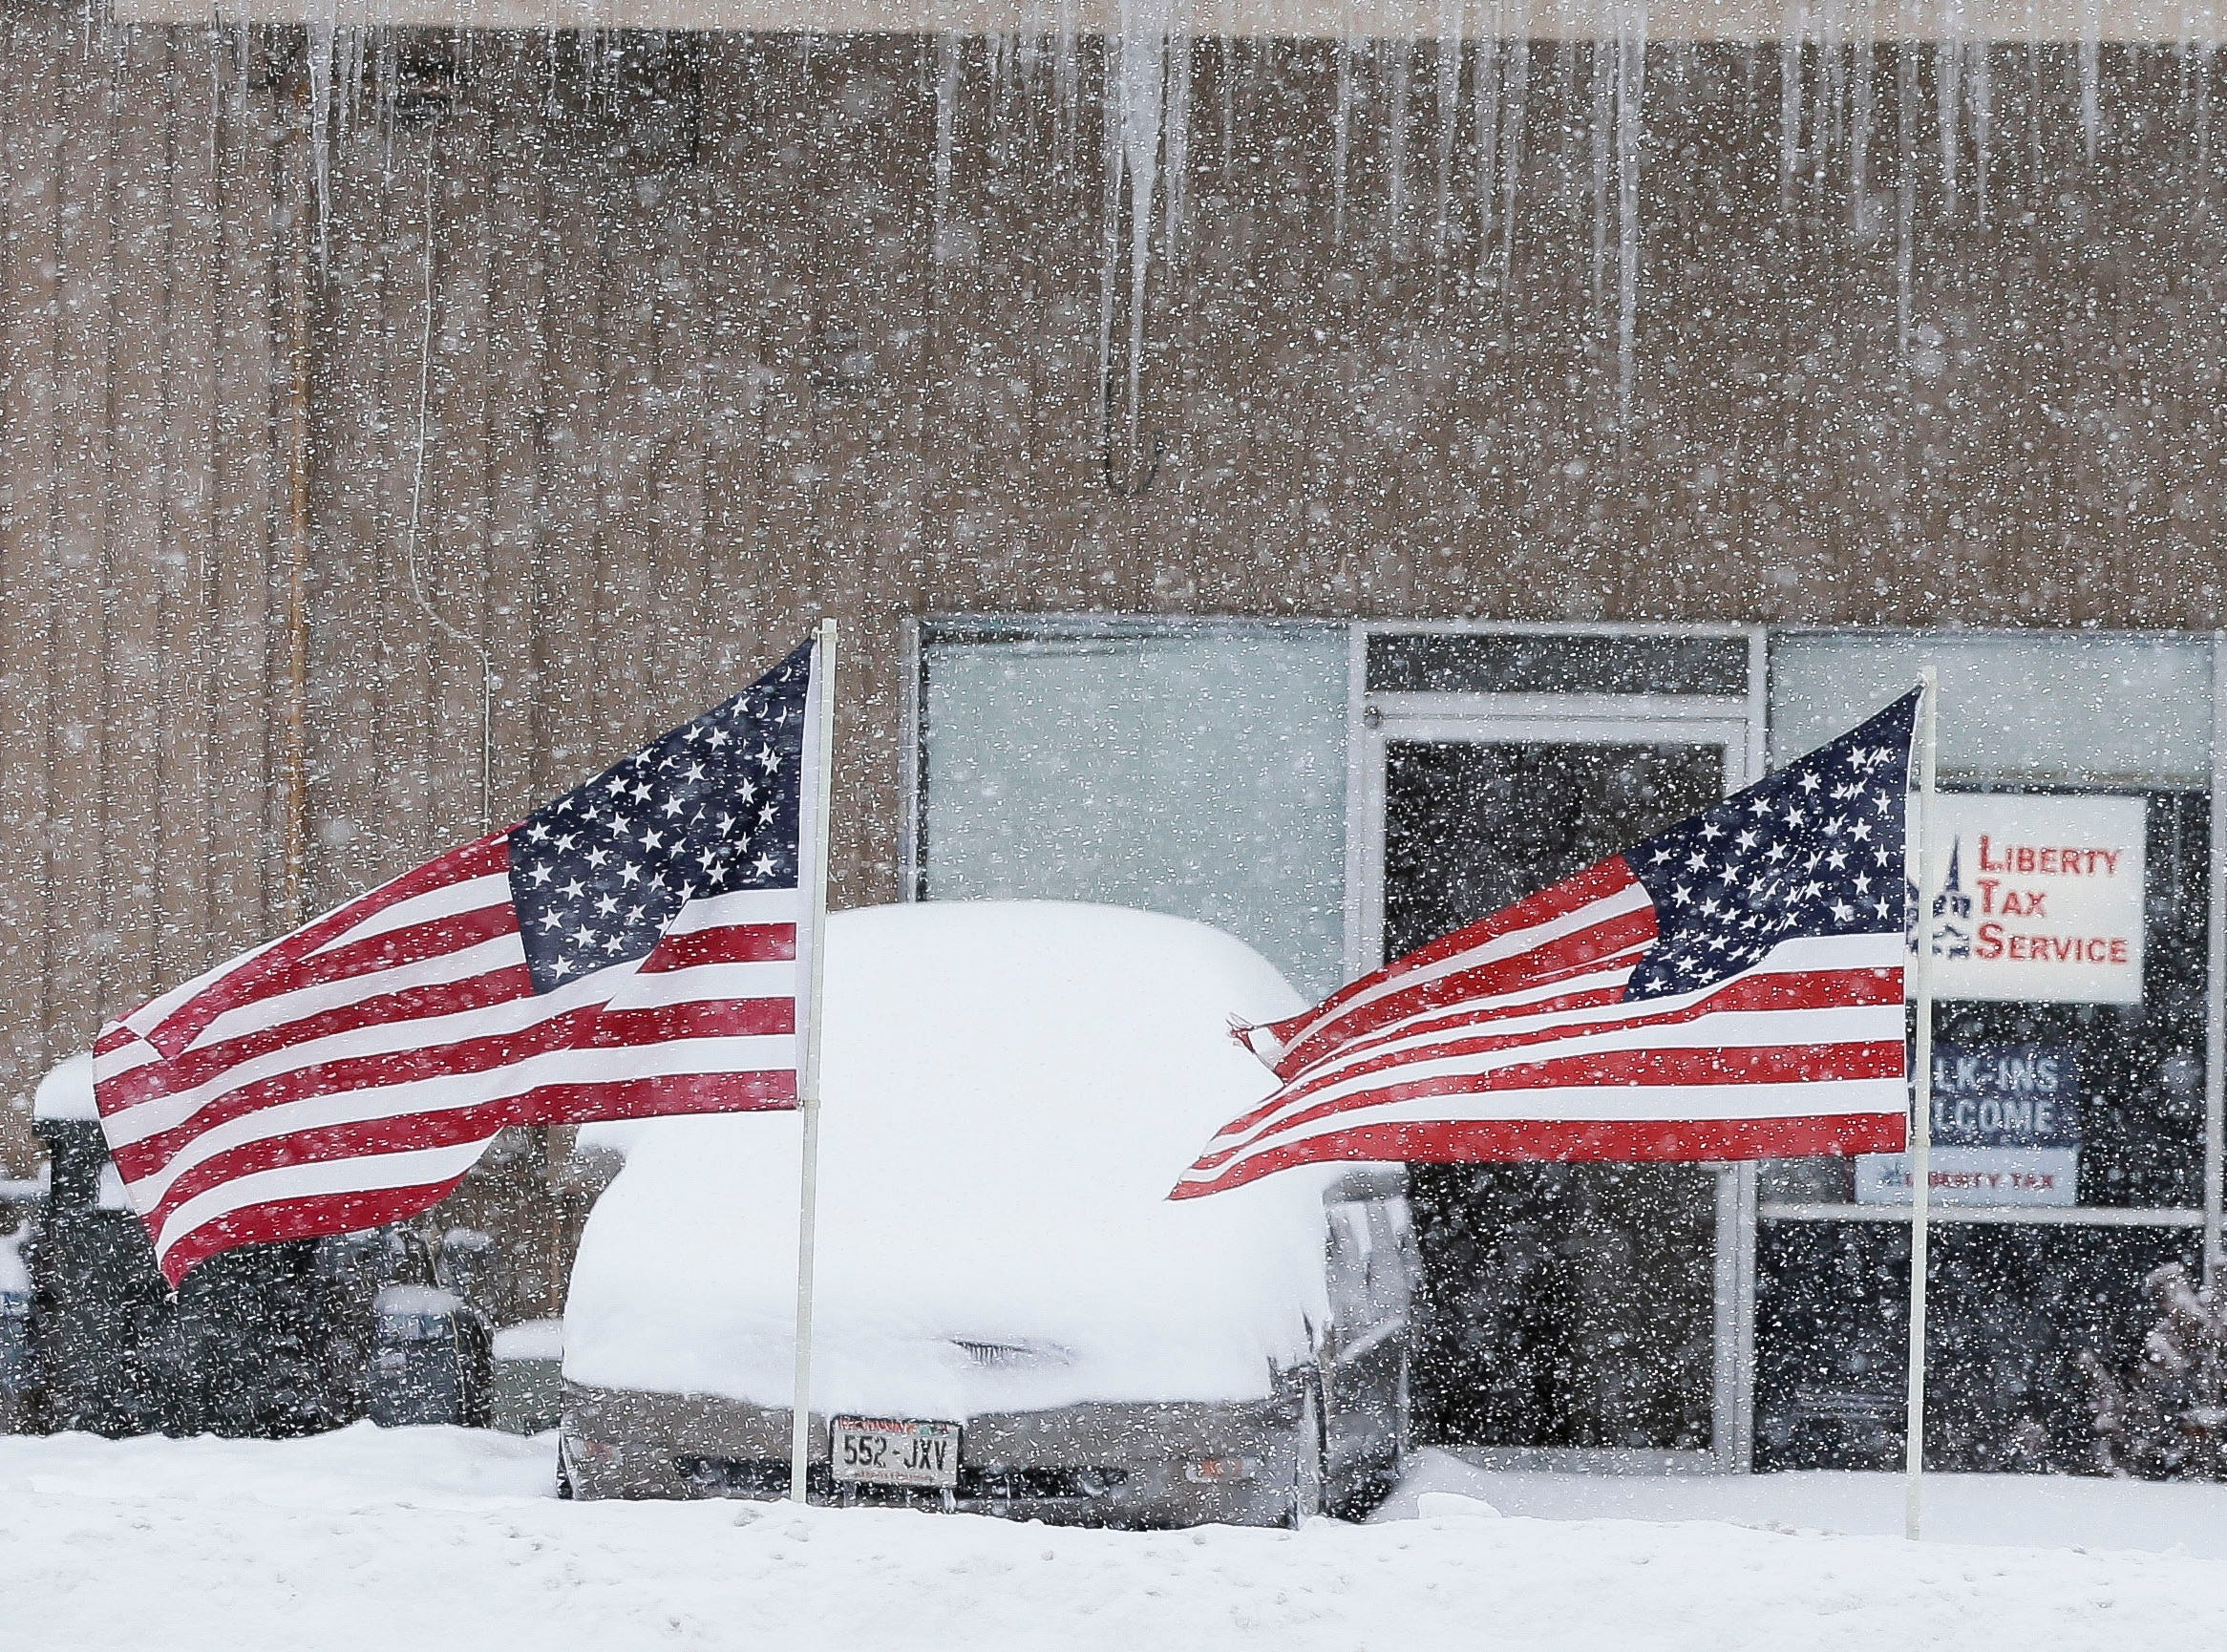 American flags flap in the wind as snow falls on Tuesday, Feb. 12, 2019, along Post Road in Stevens Point, Wis. A winter storm is expected to drop 8-11 inches of snow in central Wisconsin before clearing Tuesday night.